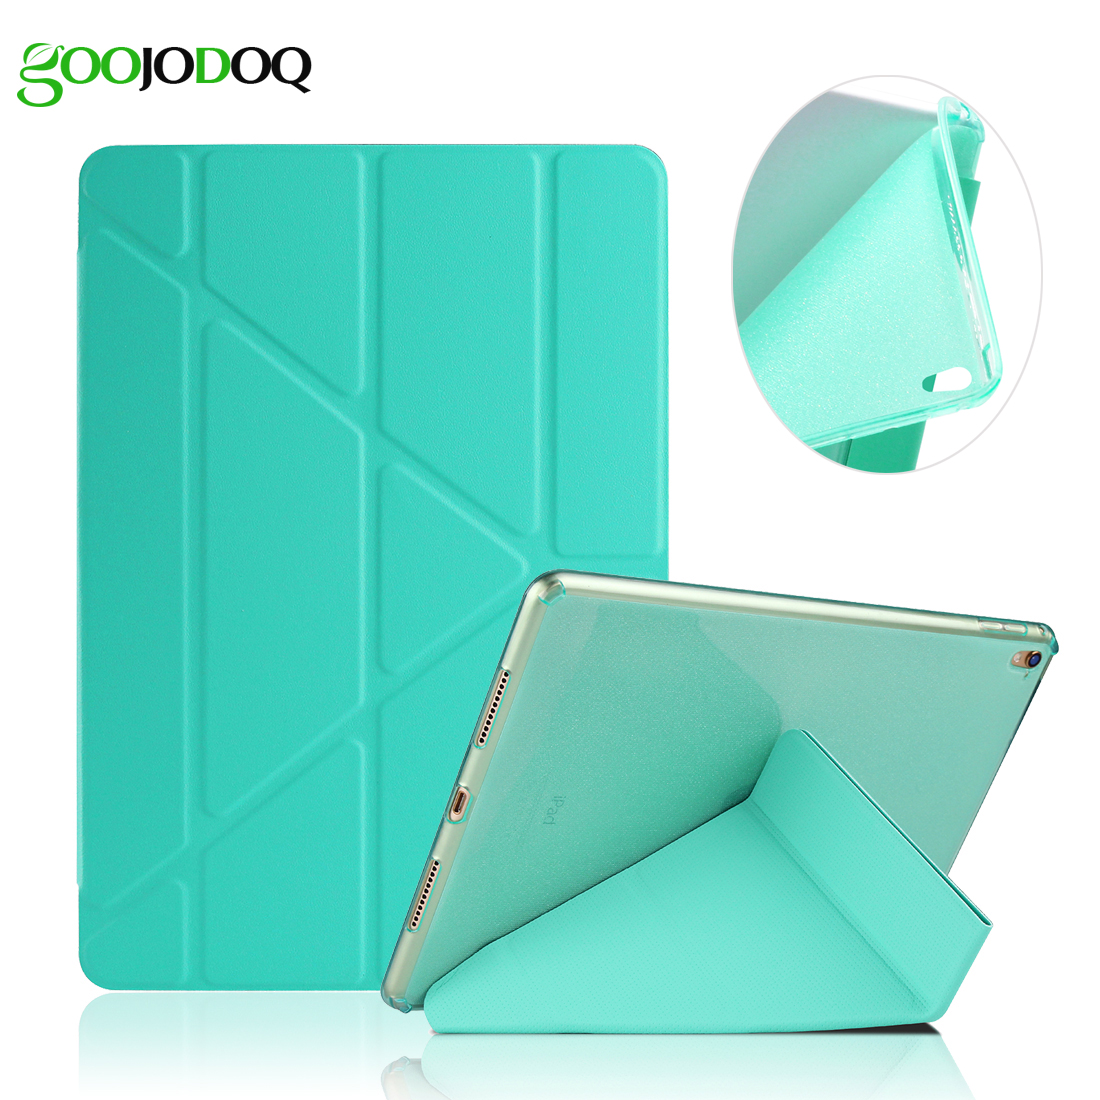 Case For iPad Pro 9.7 / iPad 2 3 4 PU Leather Smart Cover, [Multiple Stand + Glitter Silicone Soft Back] for iPad 4 Case for ipad pro 10 5 case 2017 pu leather silicone soft back slim smart cover for apple ipad 2017 pro 10 5 inch case a1701 a1709